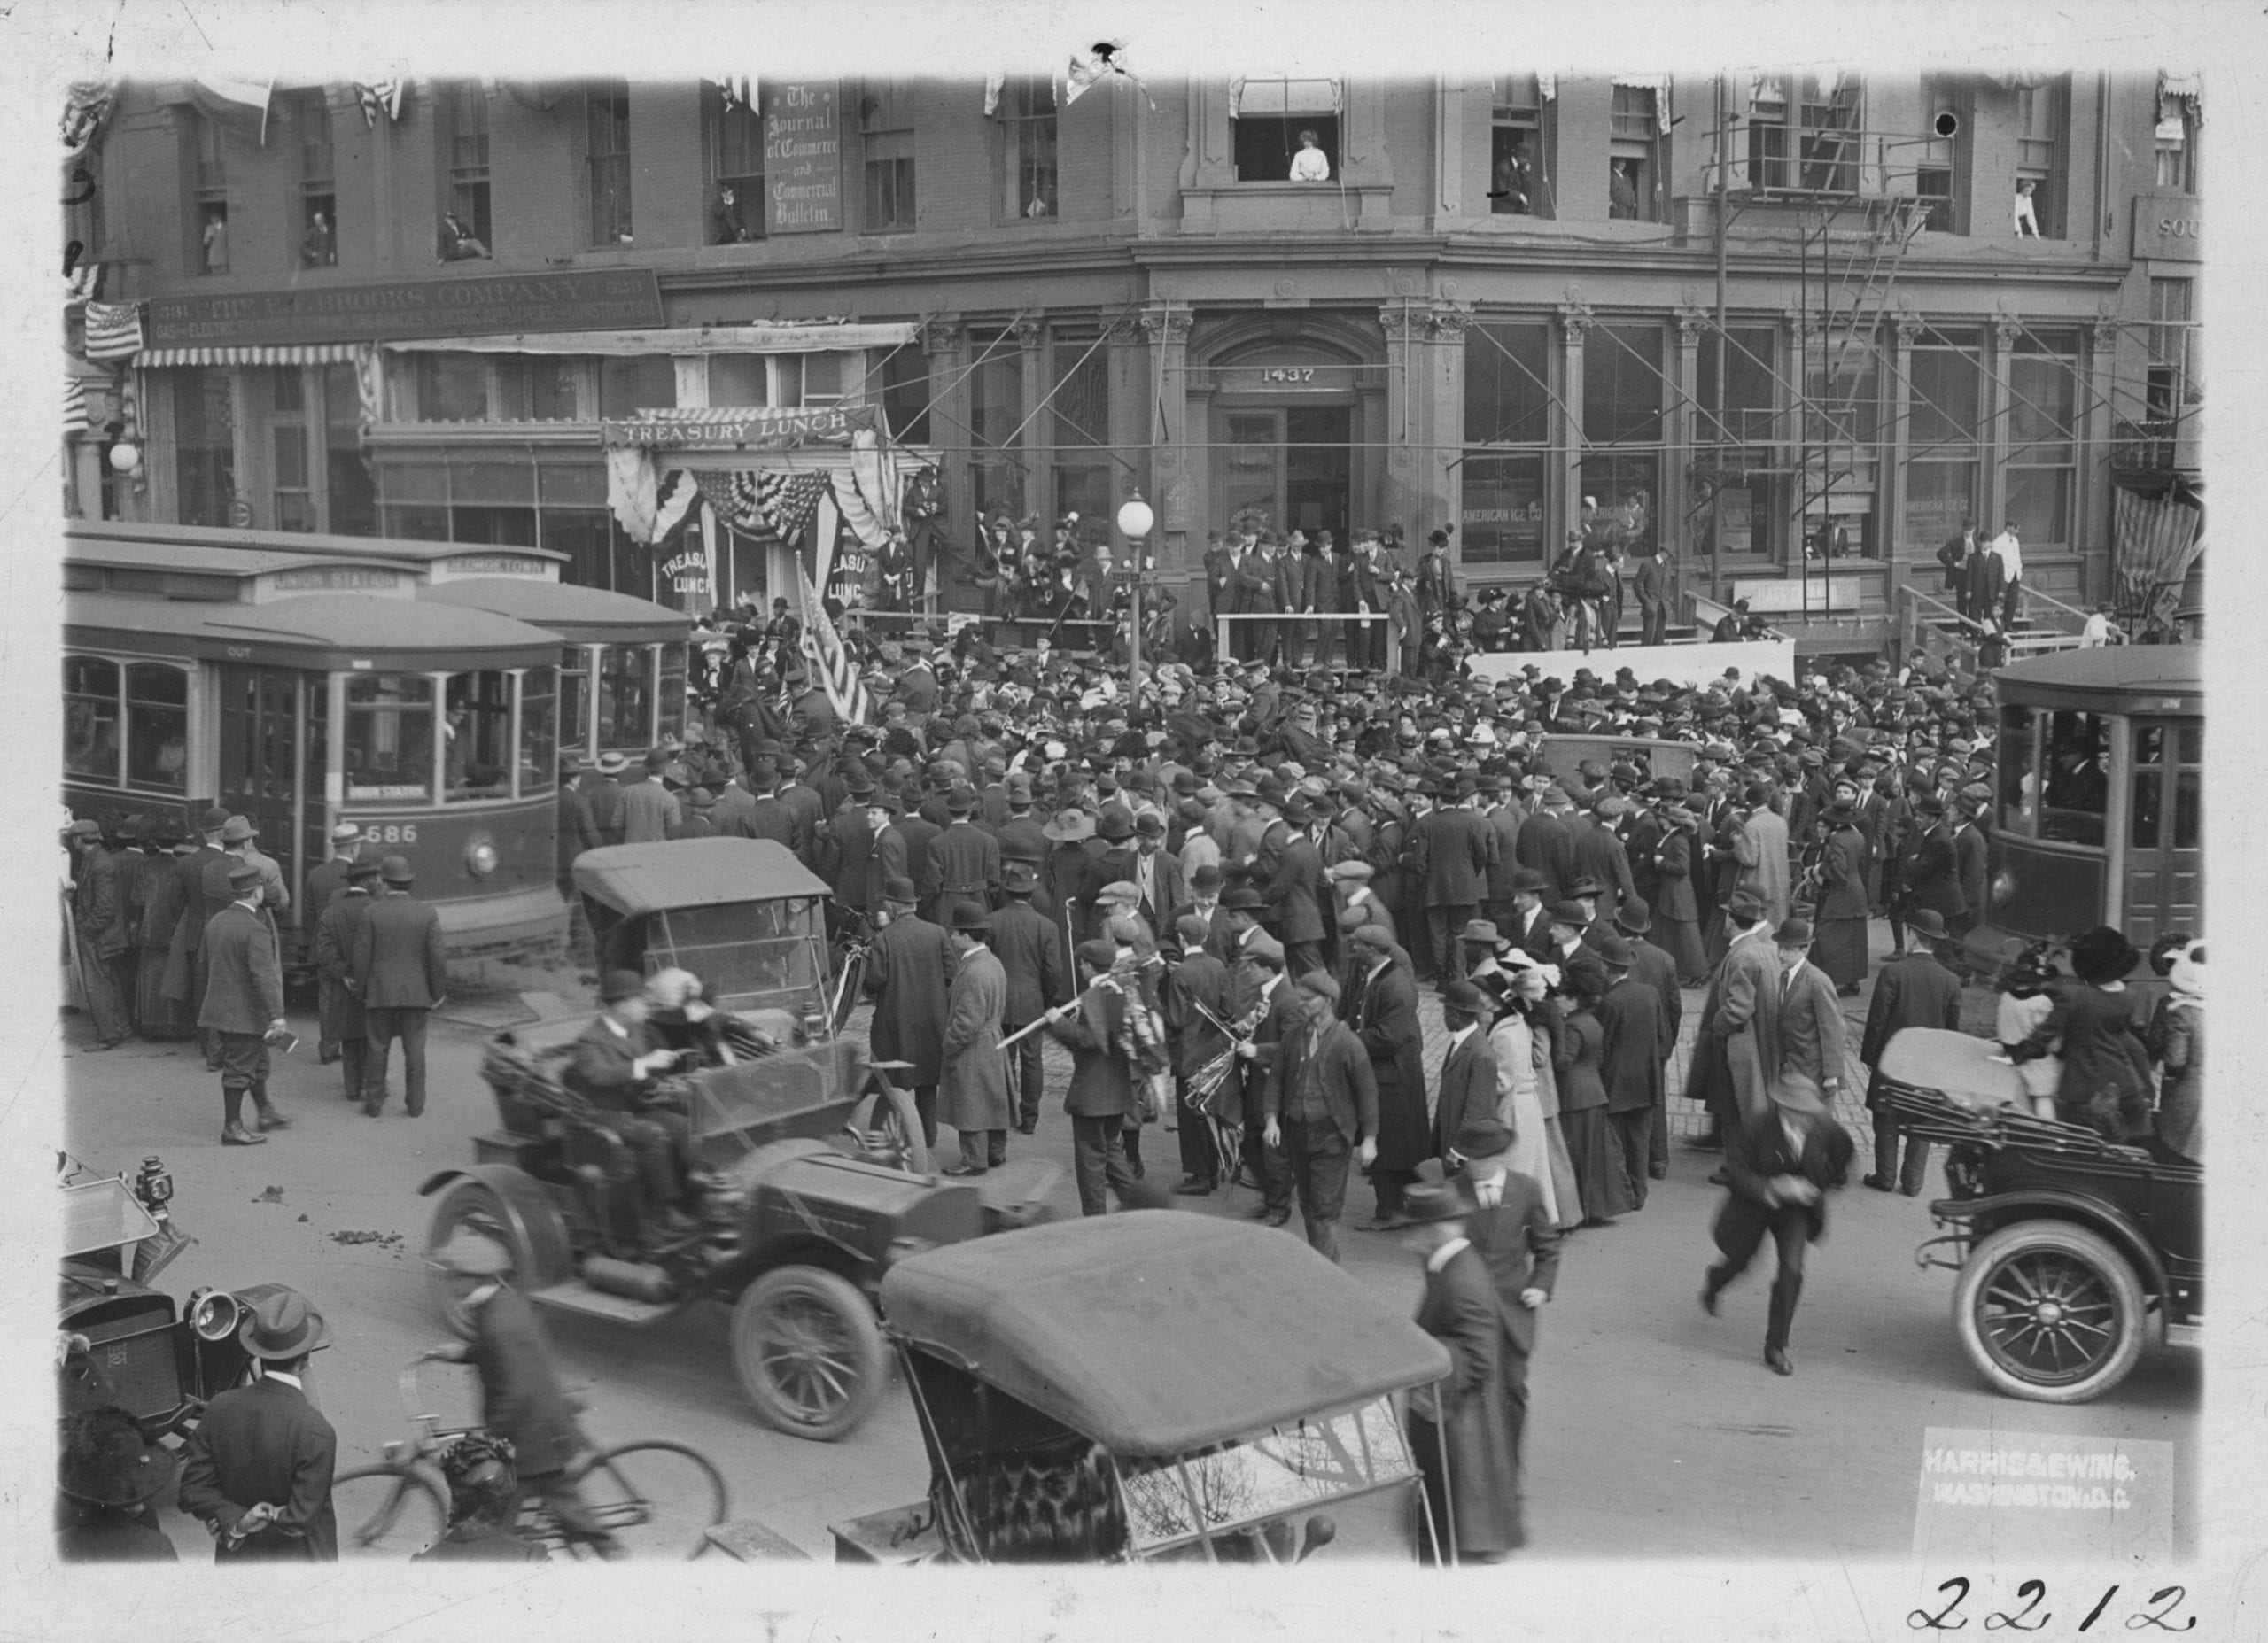 1913 Suffrage Meeting at Pennsylvania and 15th